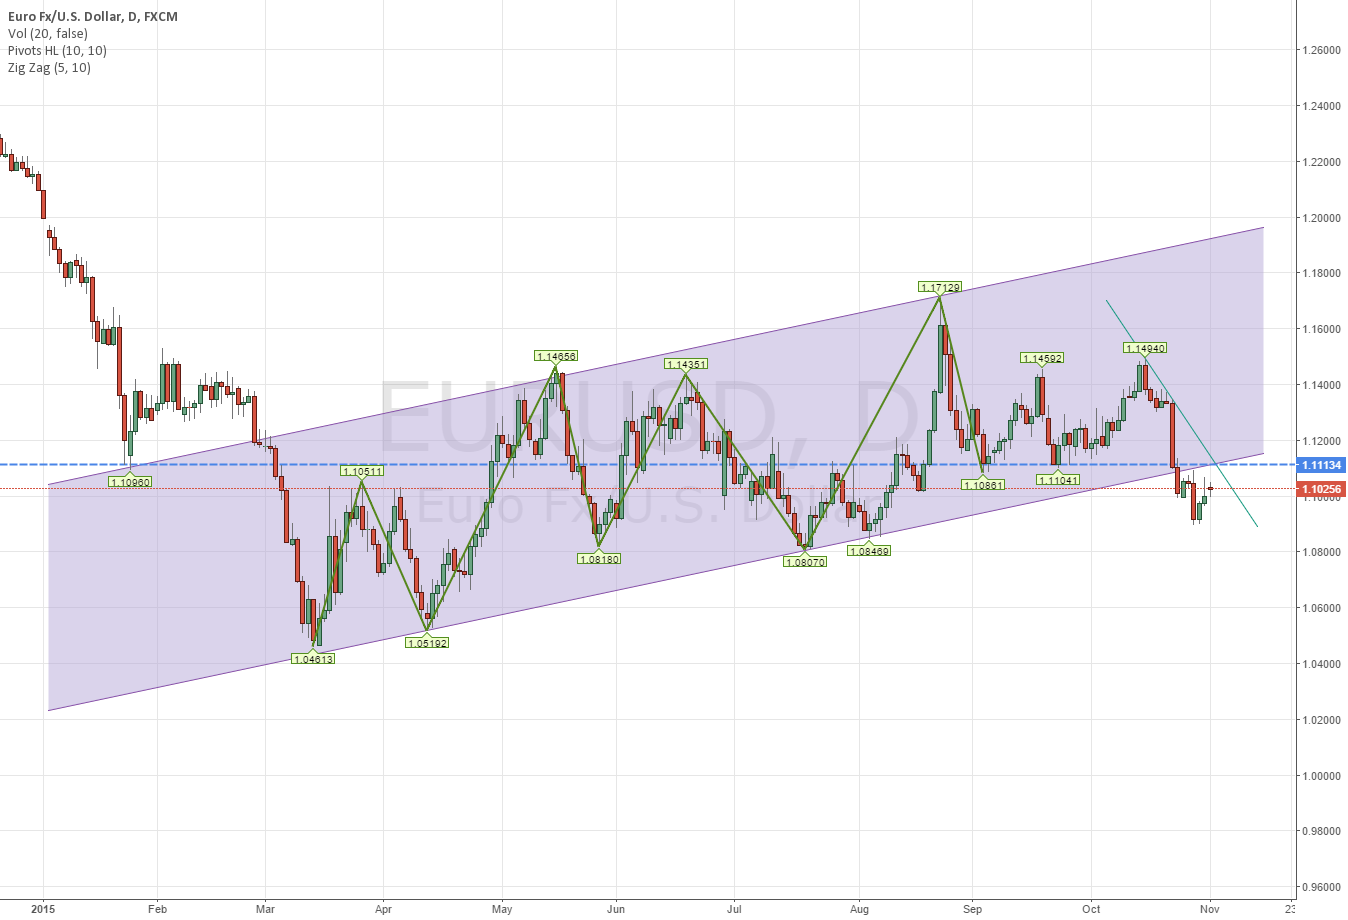 Tough Spot for EURUSD